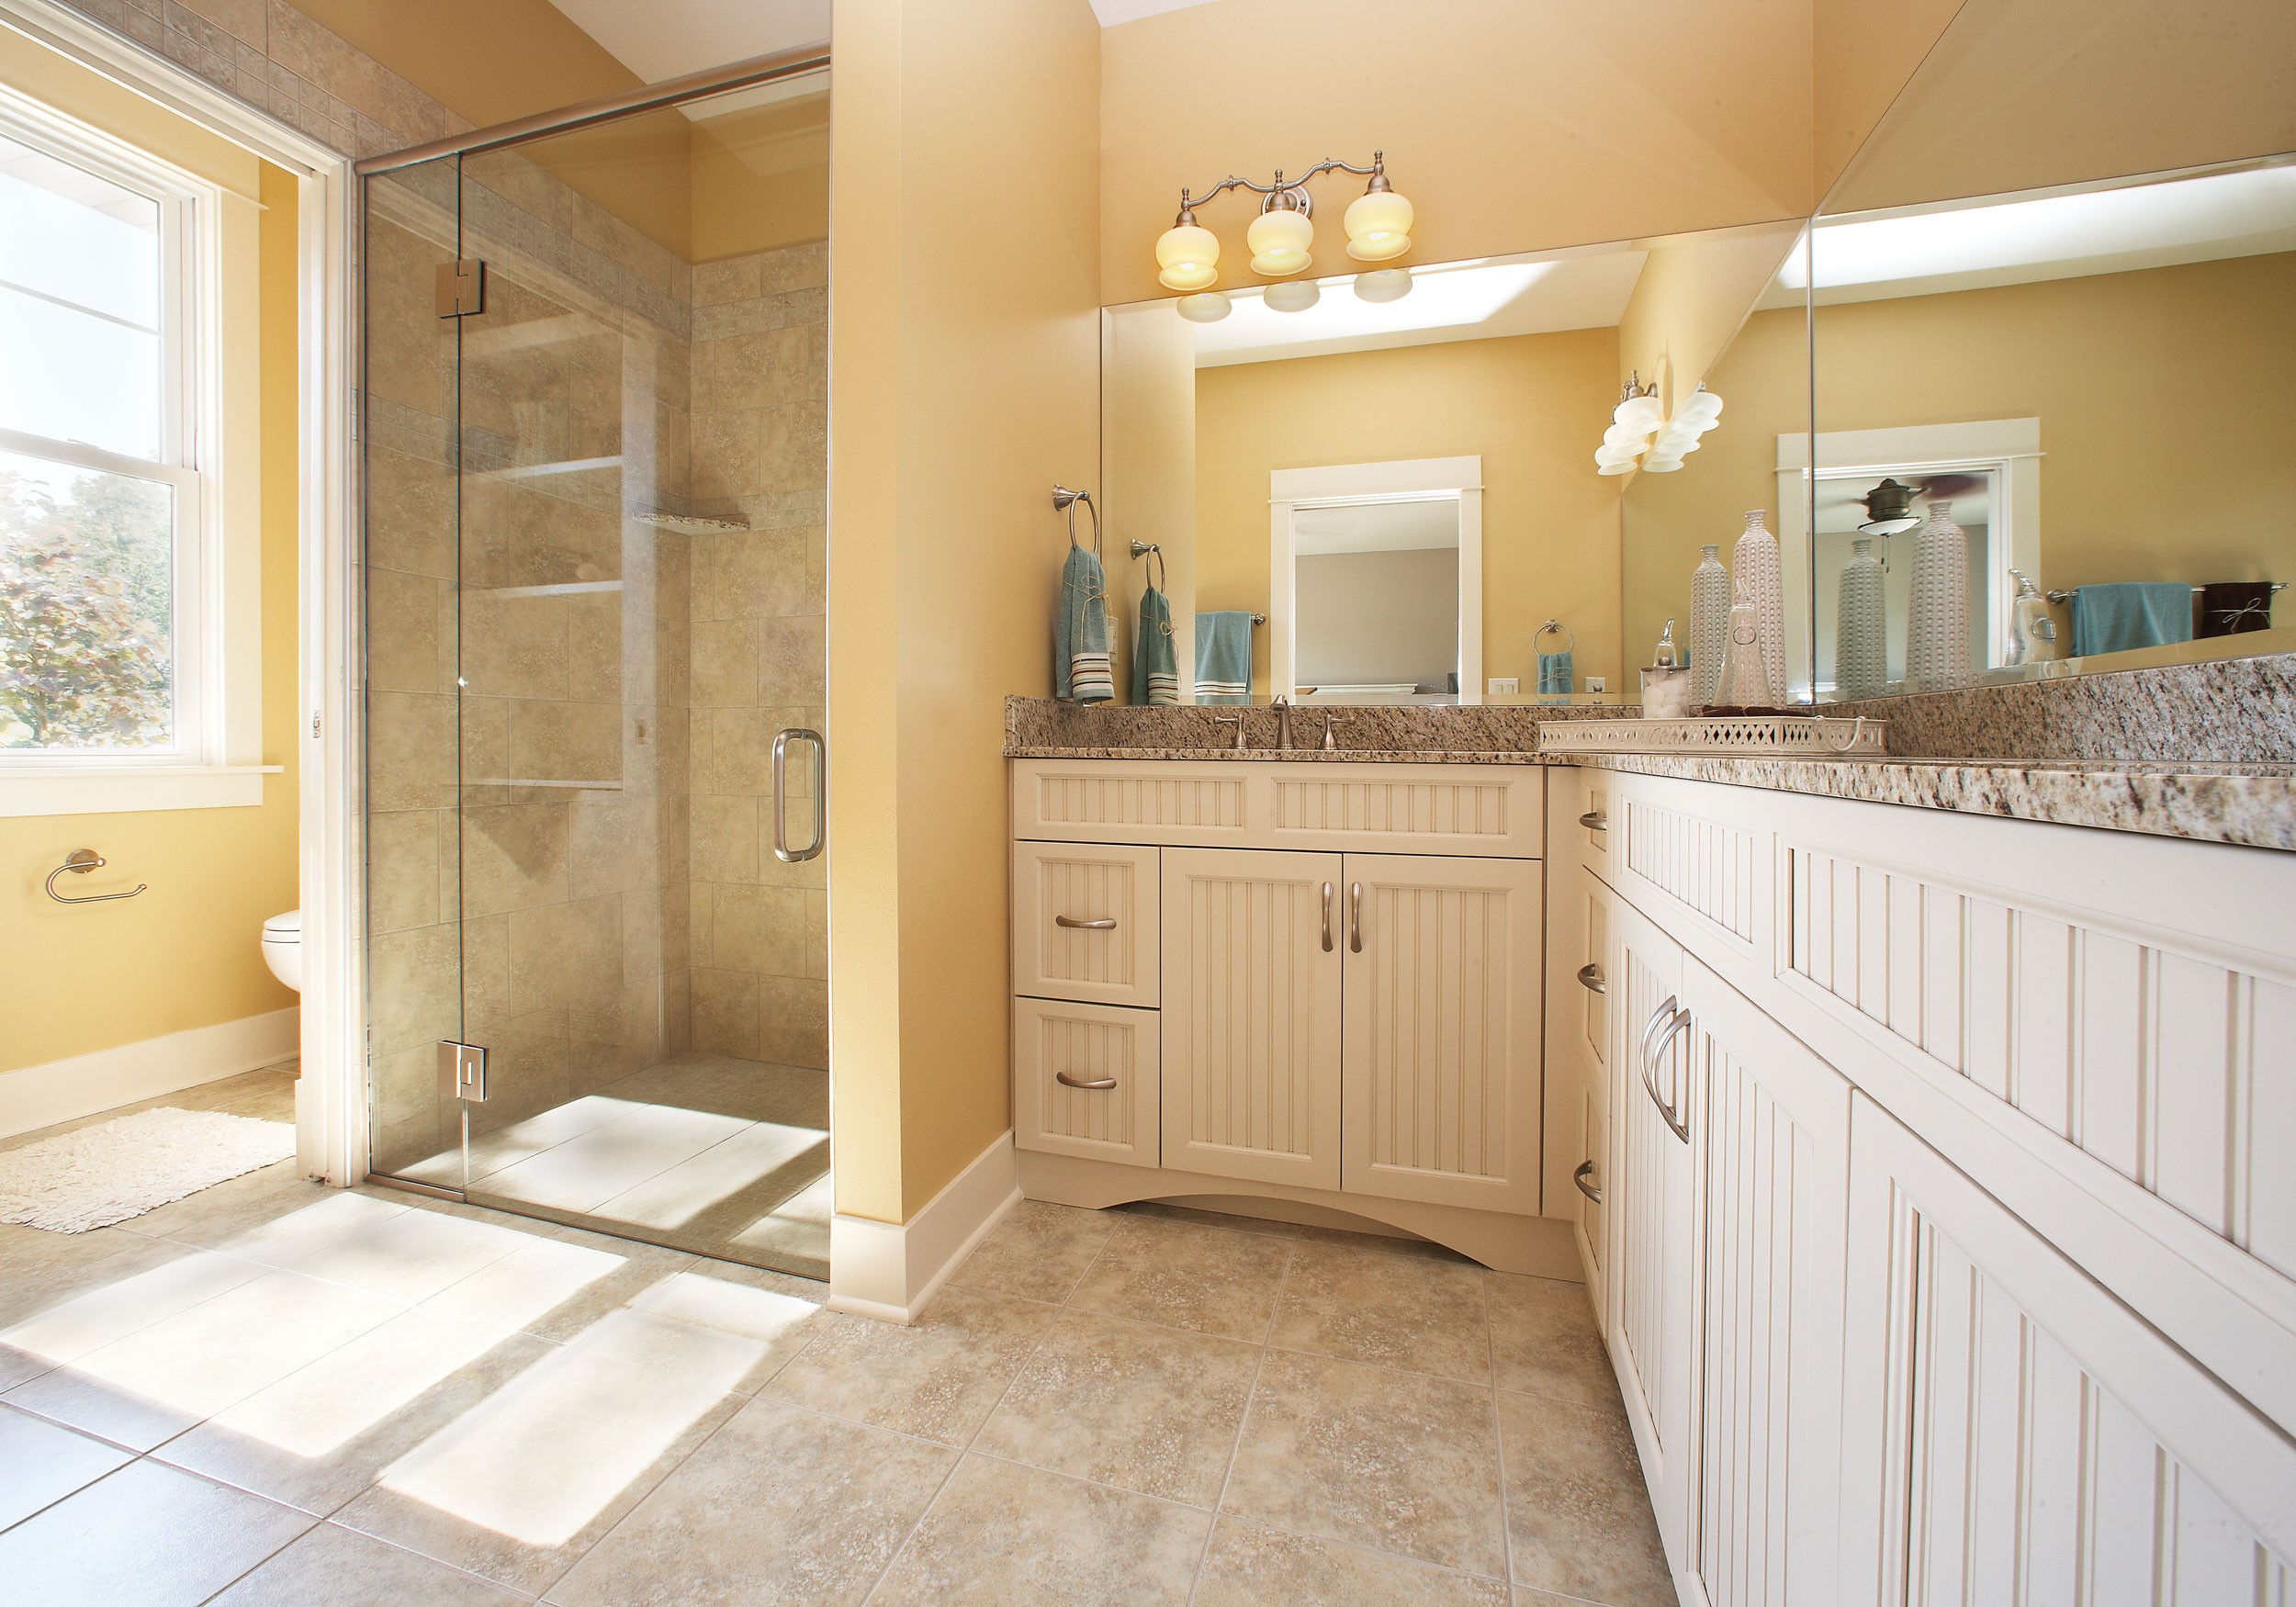 custom kitchen bathroom cabinets company in phoenix az cabinet maker